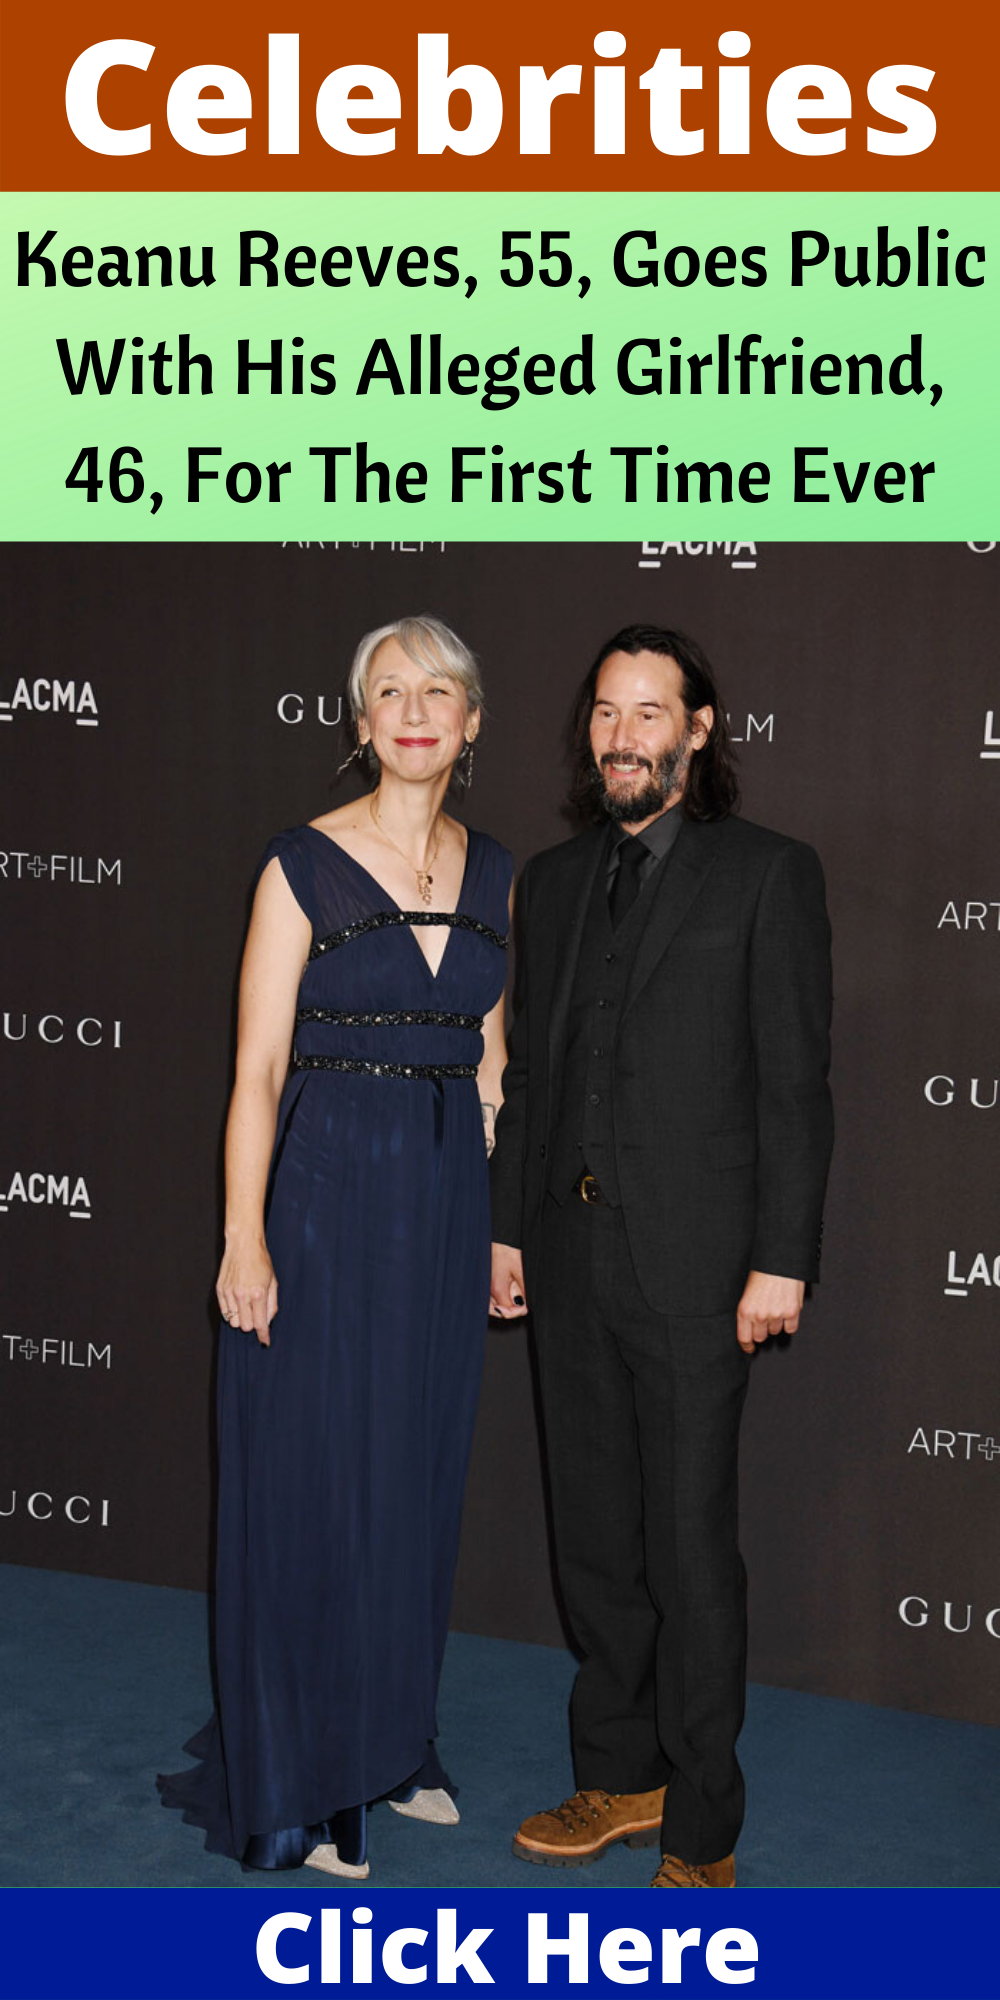 Keanu Reeves, 55, Goes Public With His Alleged Girlfriend